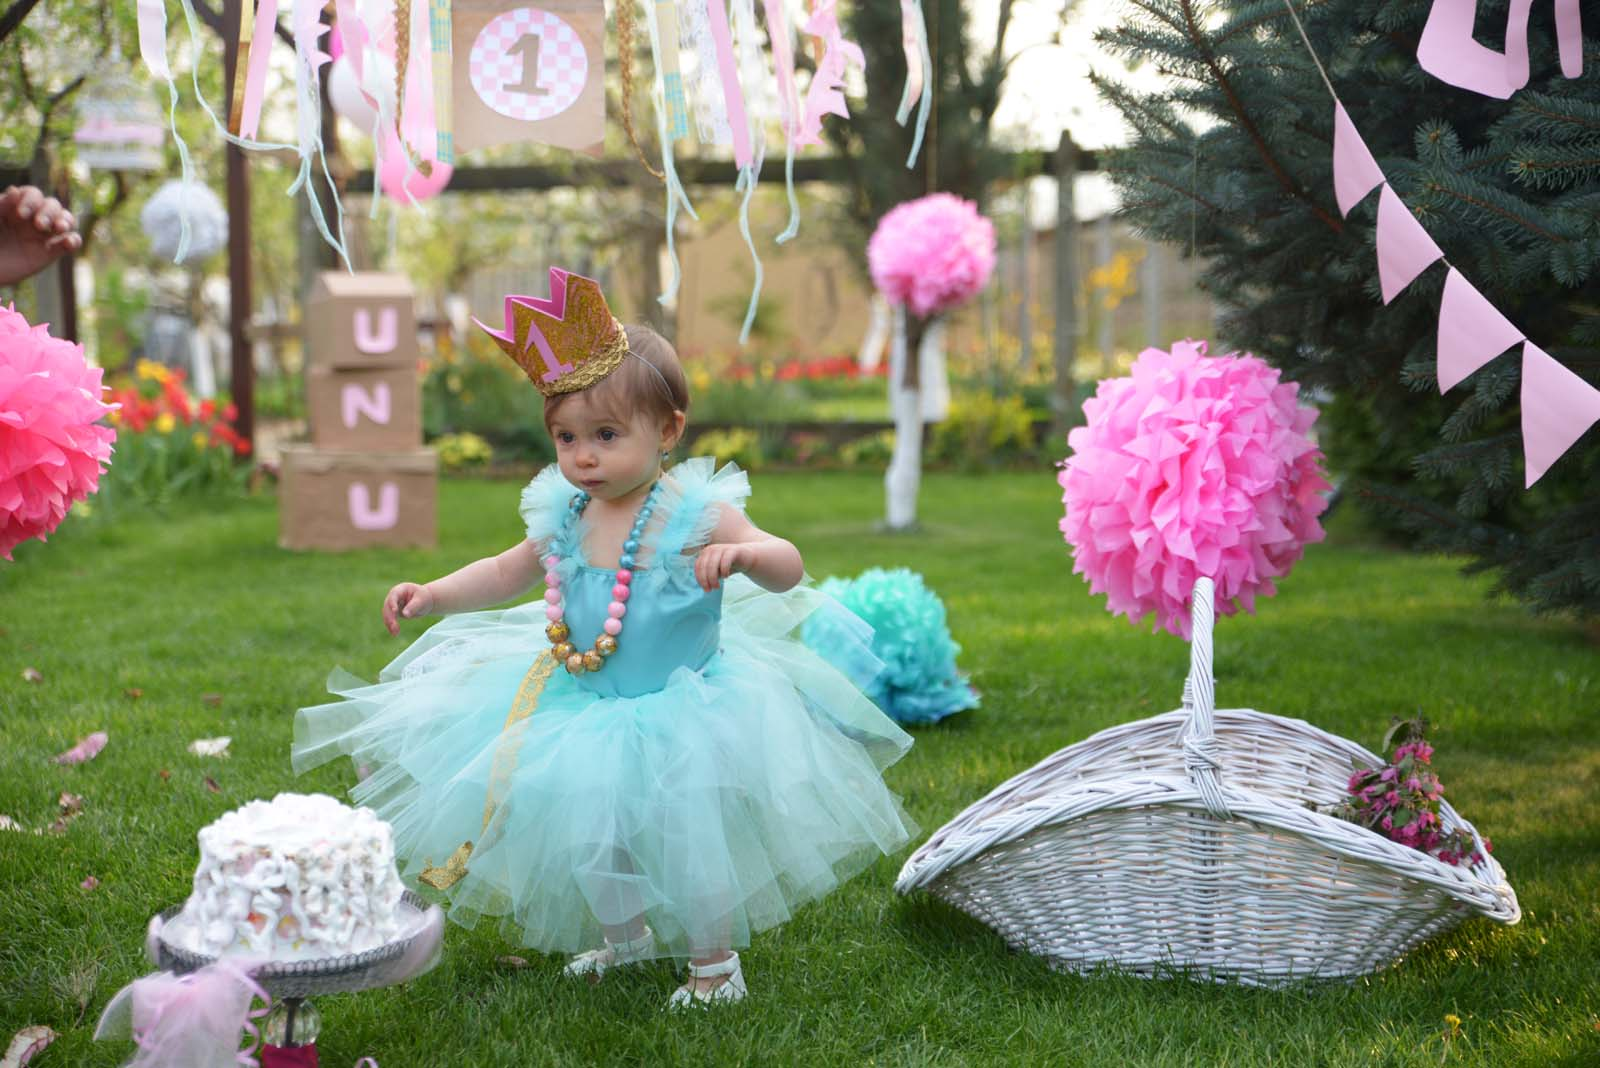 69_baby_girl_first_anniversary_tutu_pompon